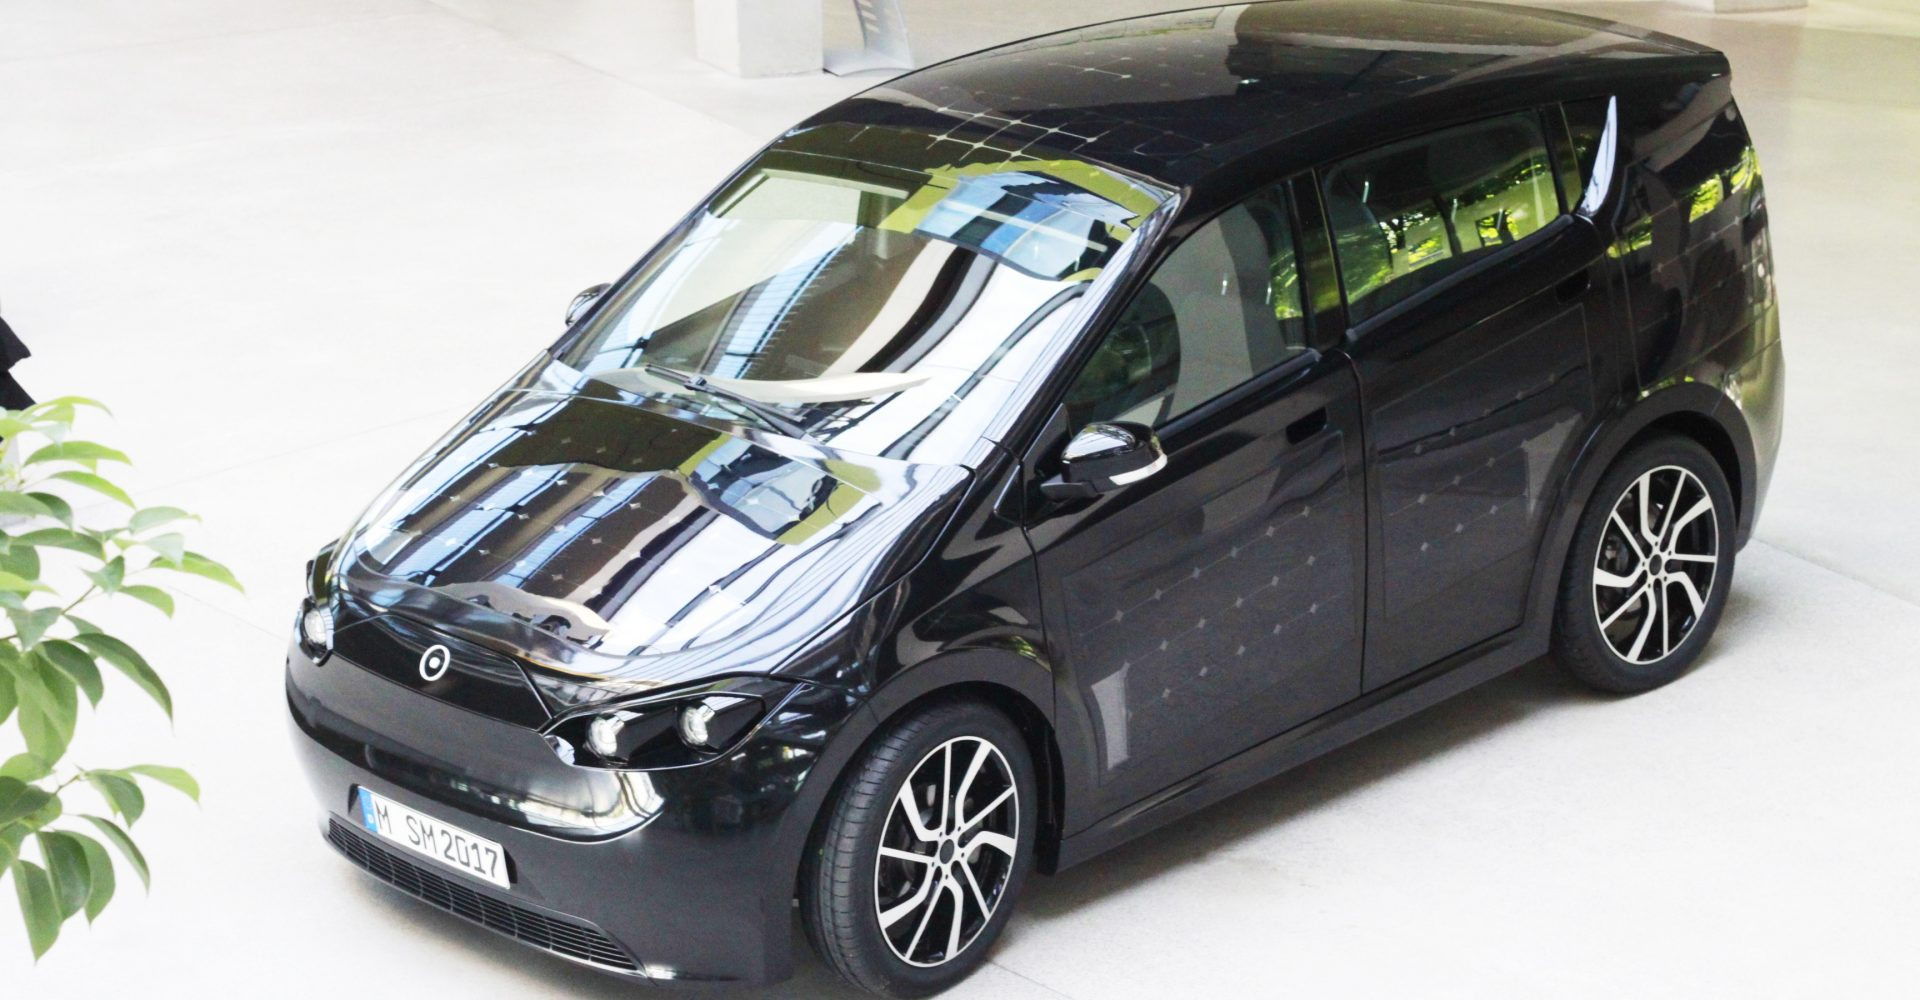 The self-charging car of the future is here and it has built-in solar panels